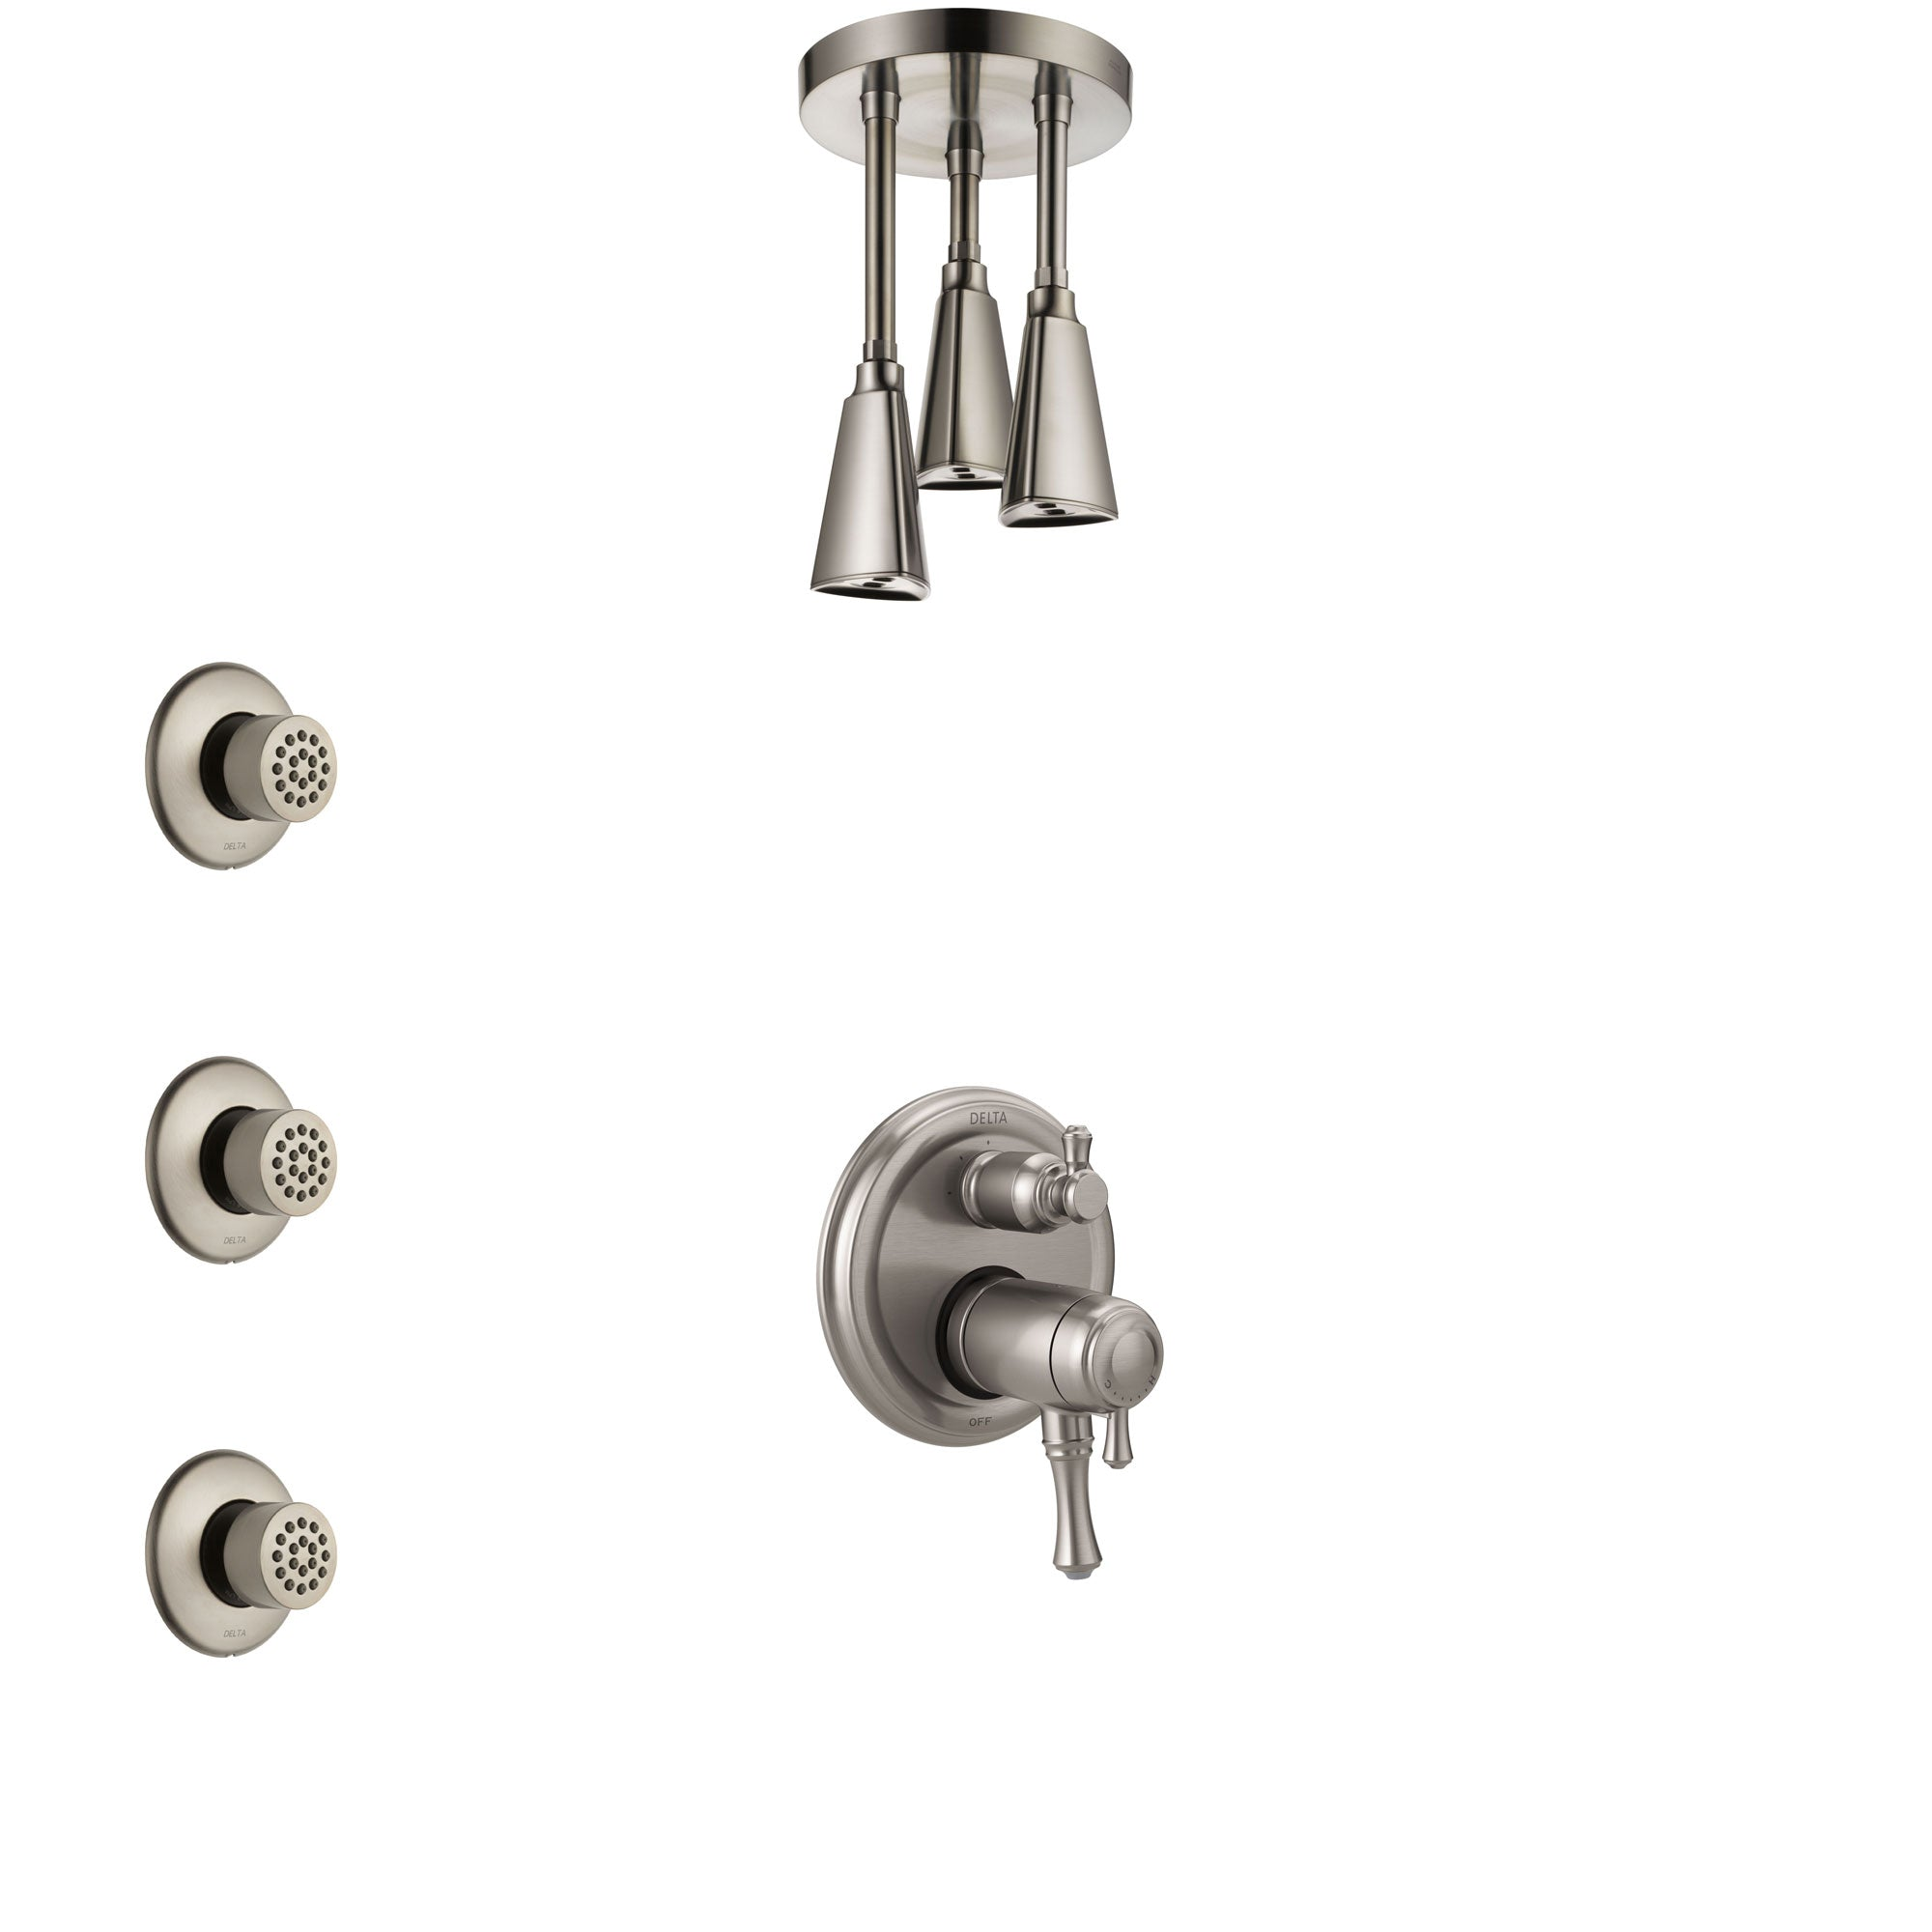 Delta Cassidy Dual Thermostatic Control Stainless Steel Finish Integrated Diverter Shower System, Ceiling Showerhead, and 3 Body Sprays SS27T897SS12